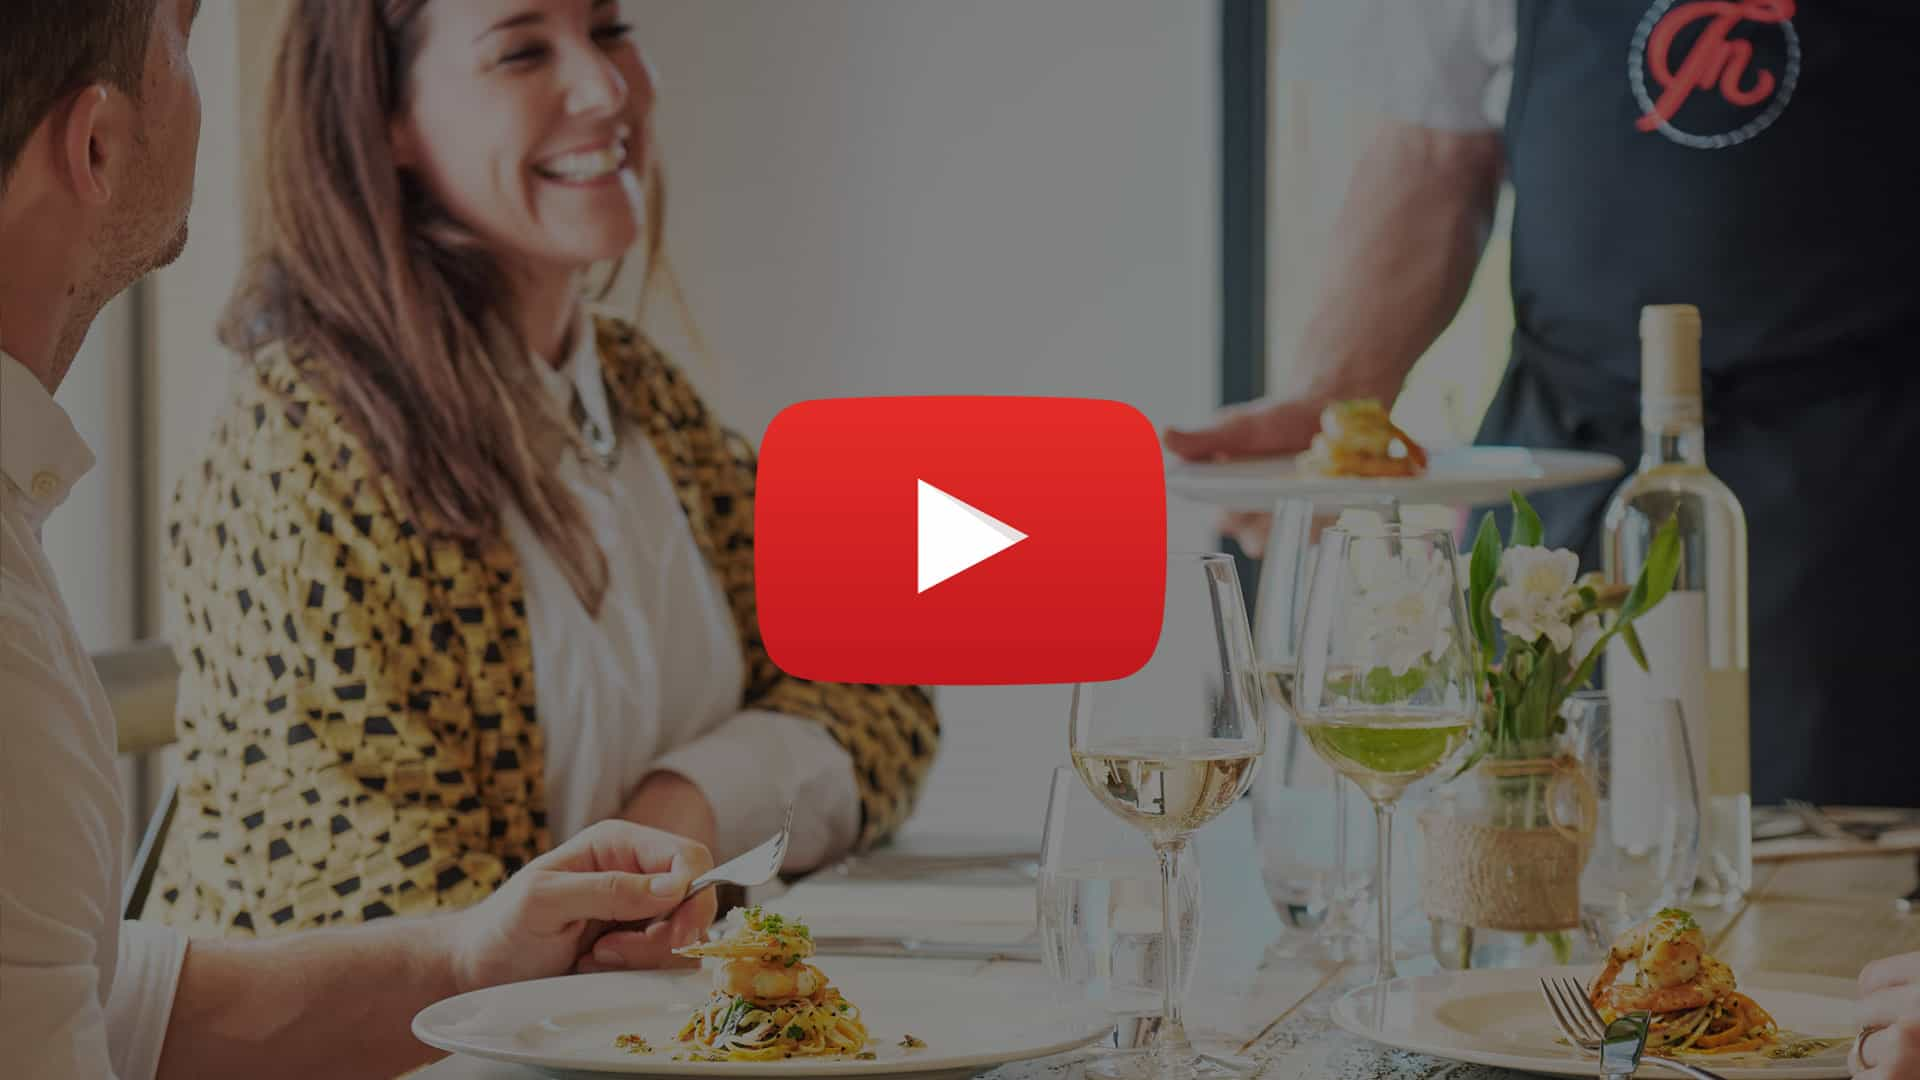 Watch this video to learn more about our private chef service